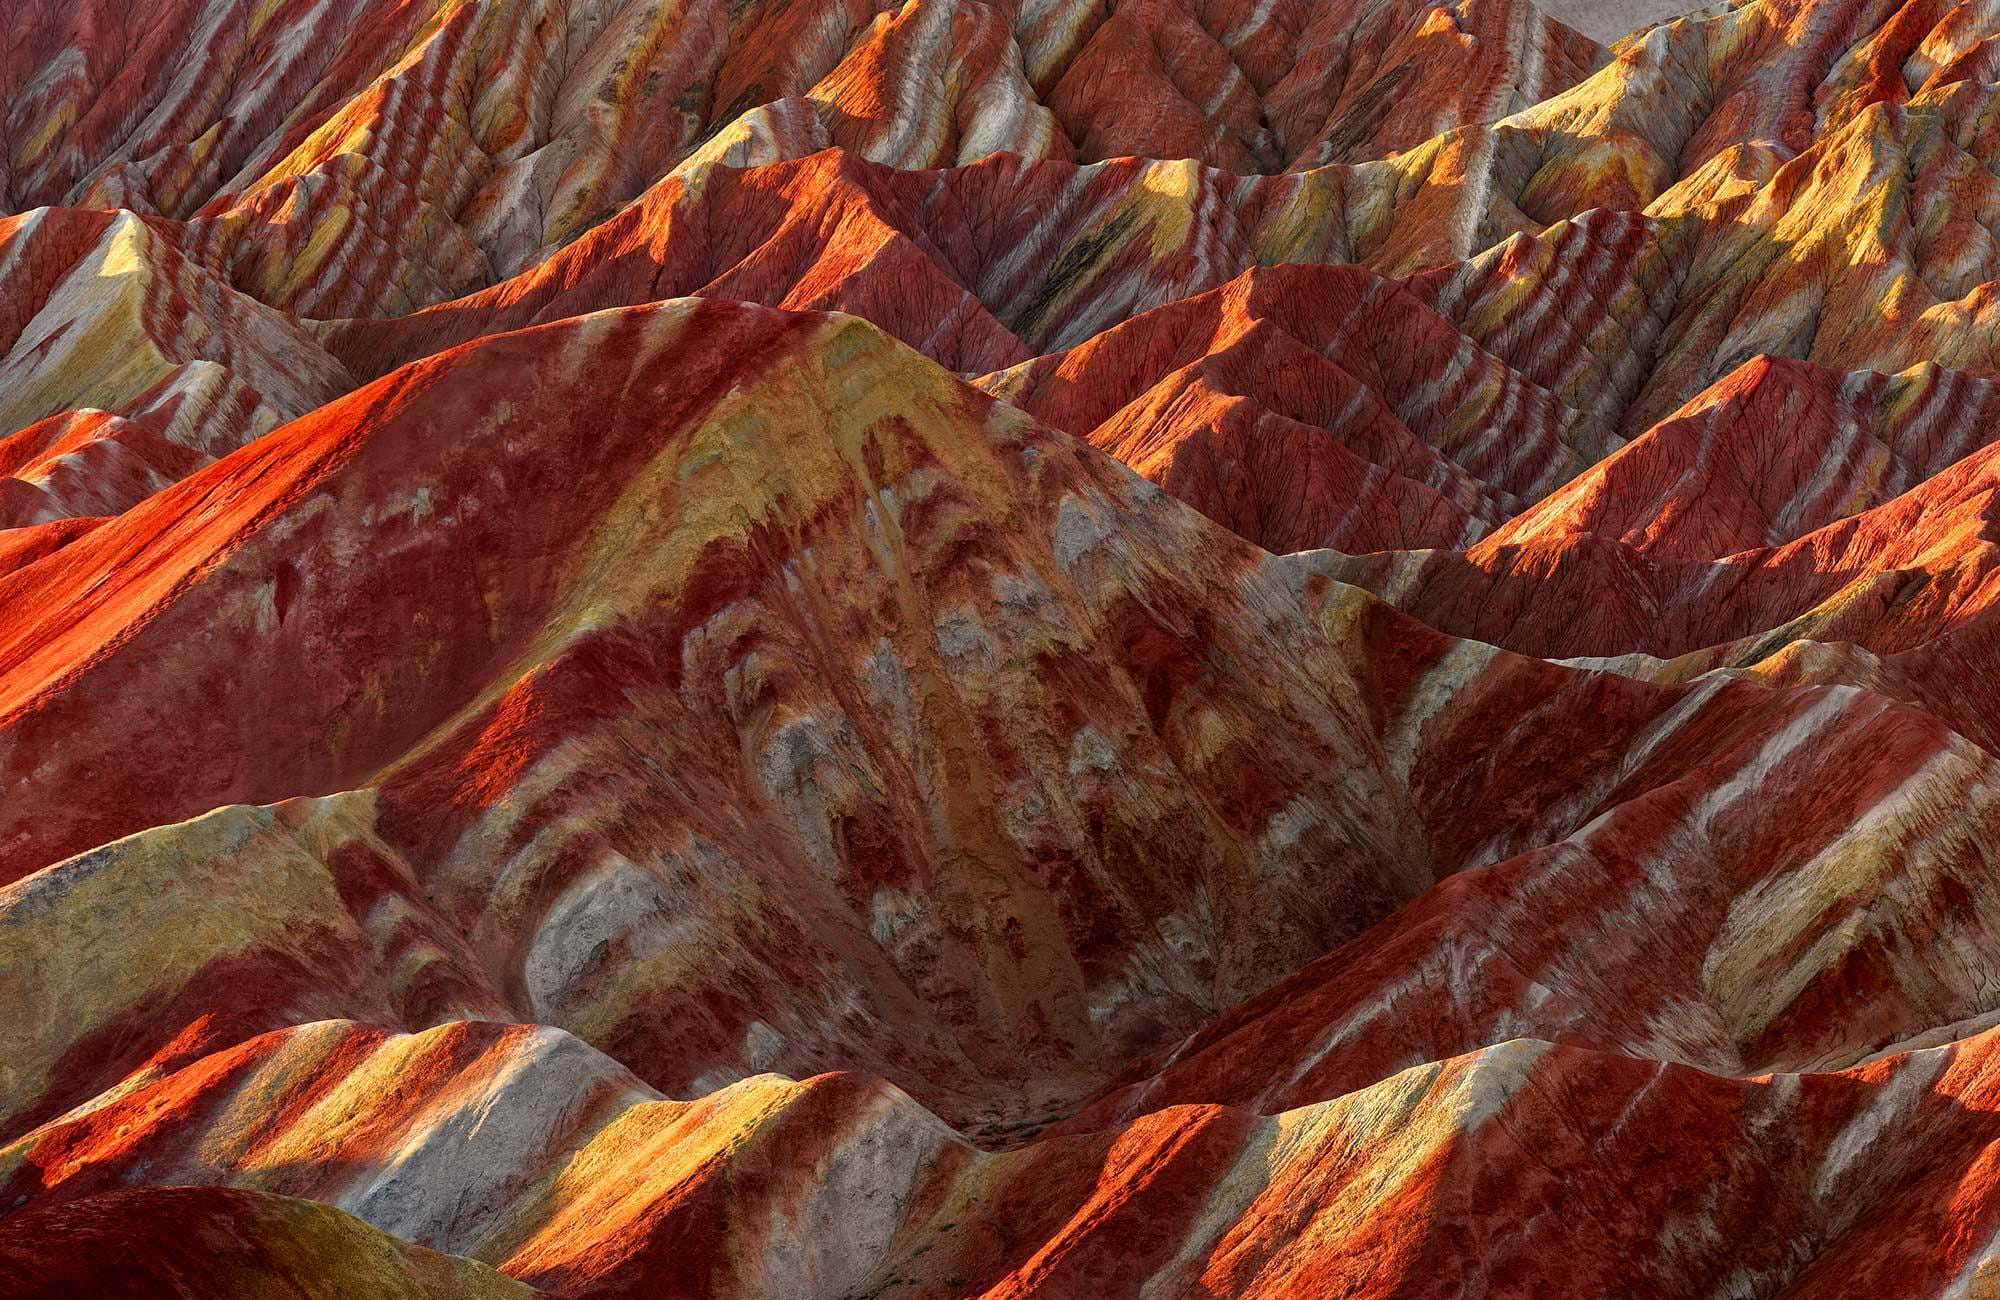 china-gansu-province-zhangye-national-geopark-colorful-rock-formations